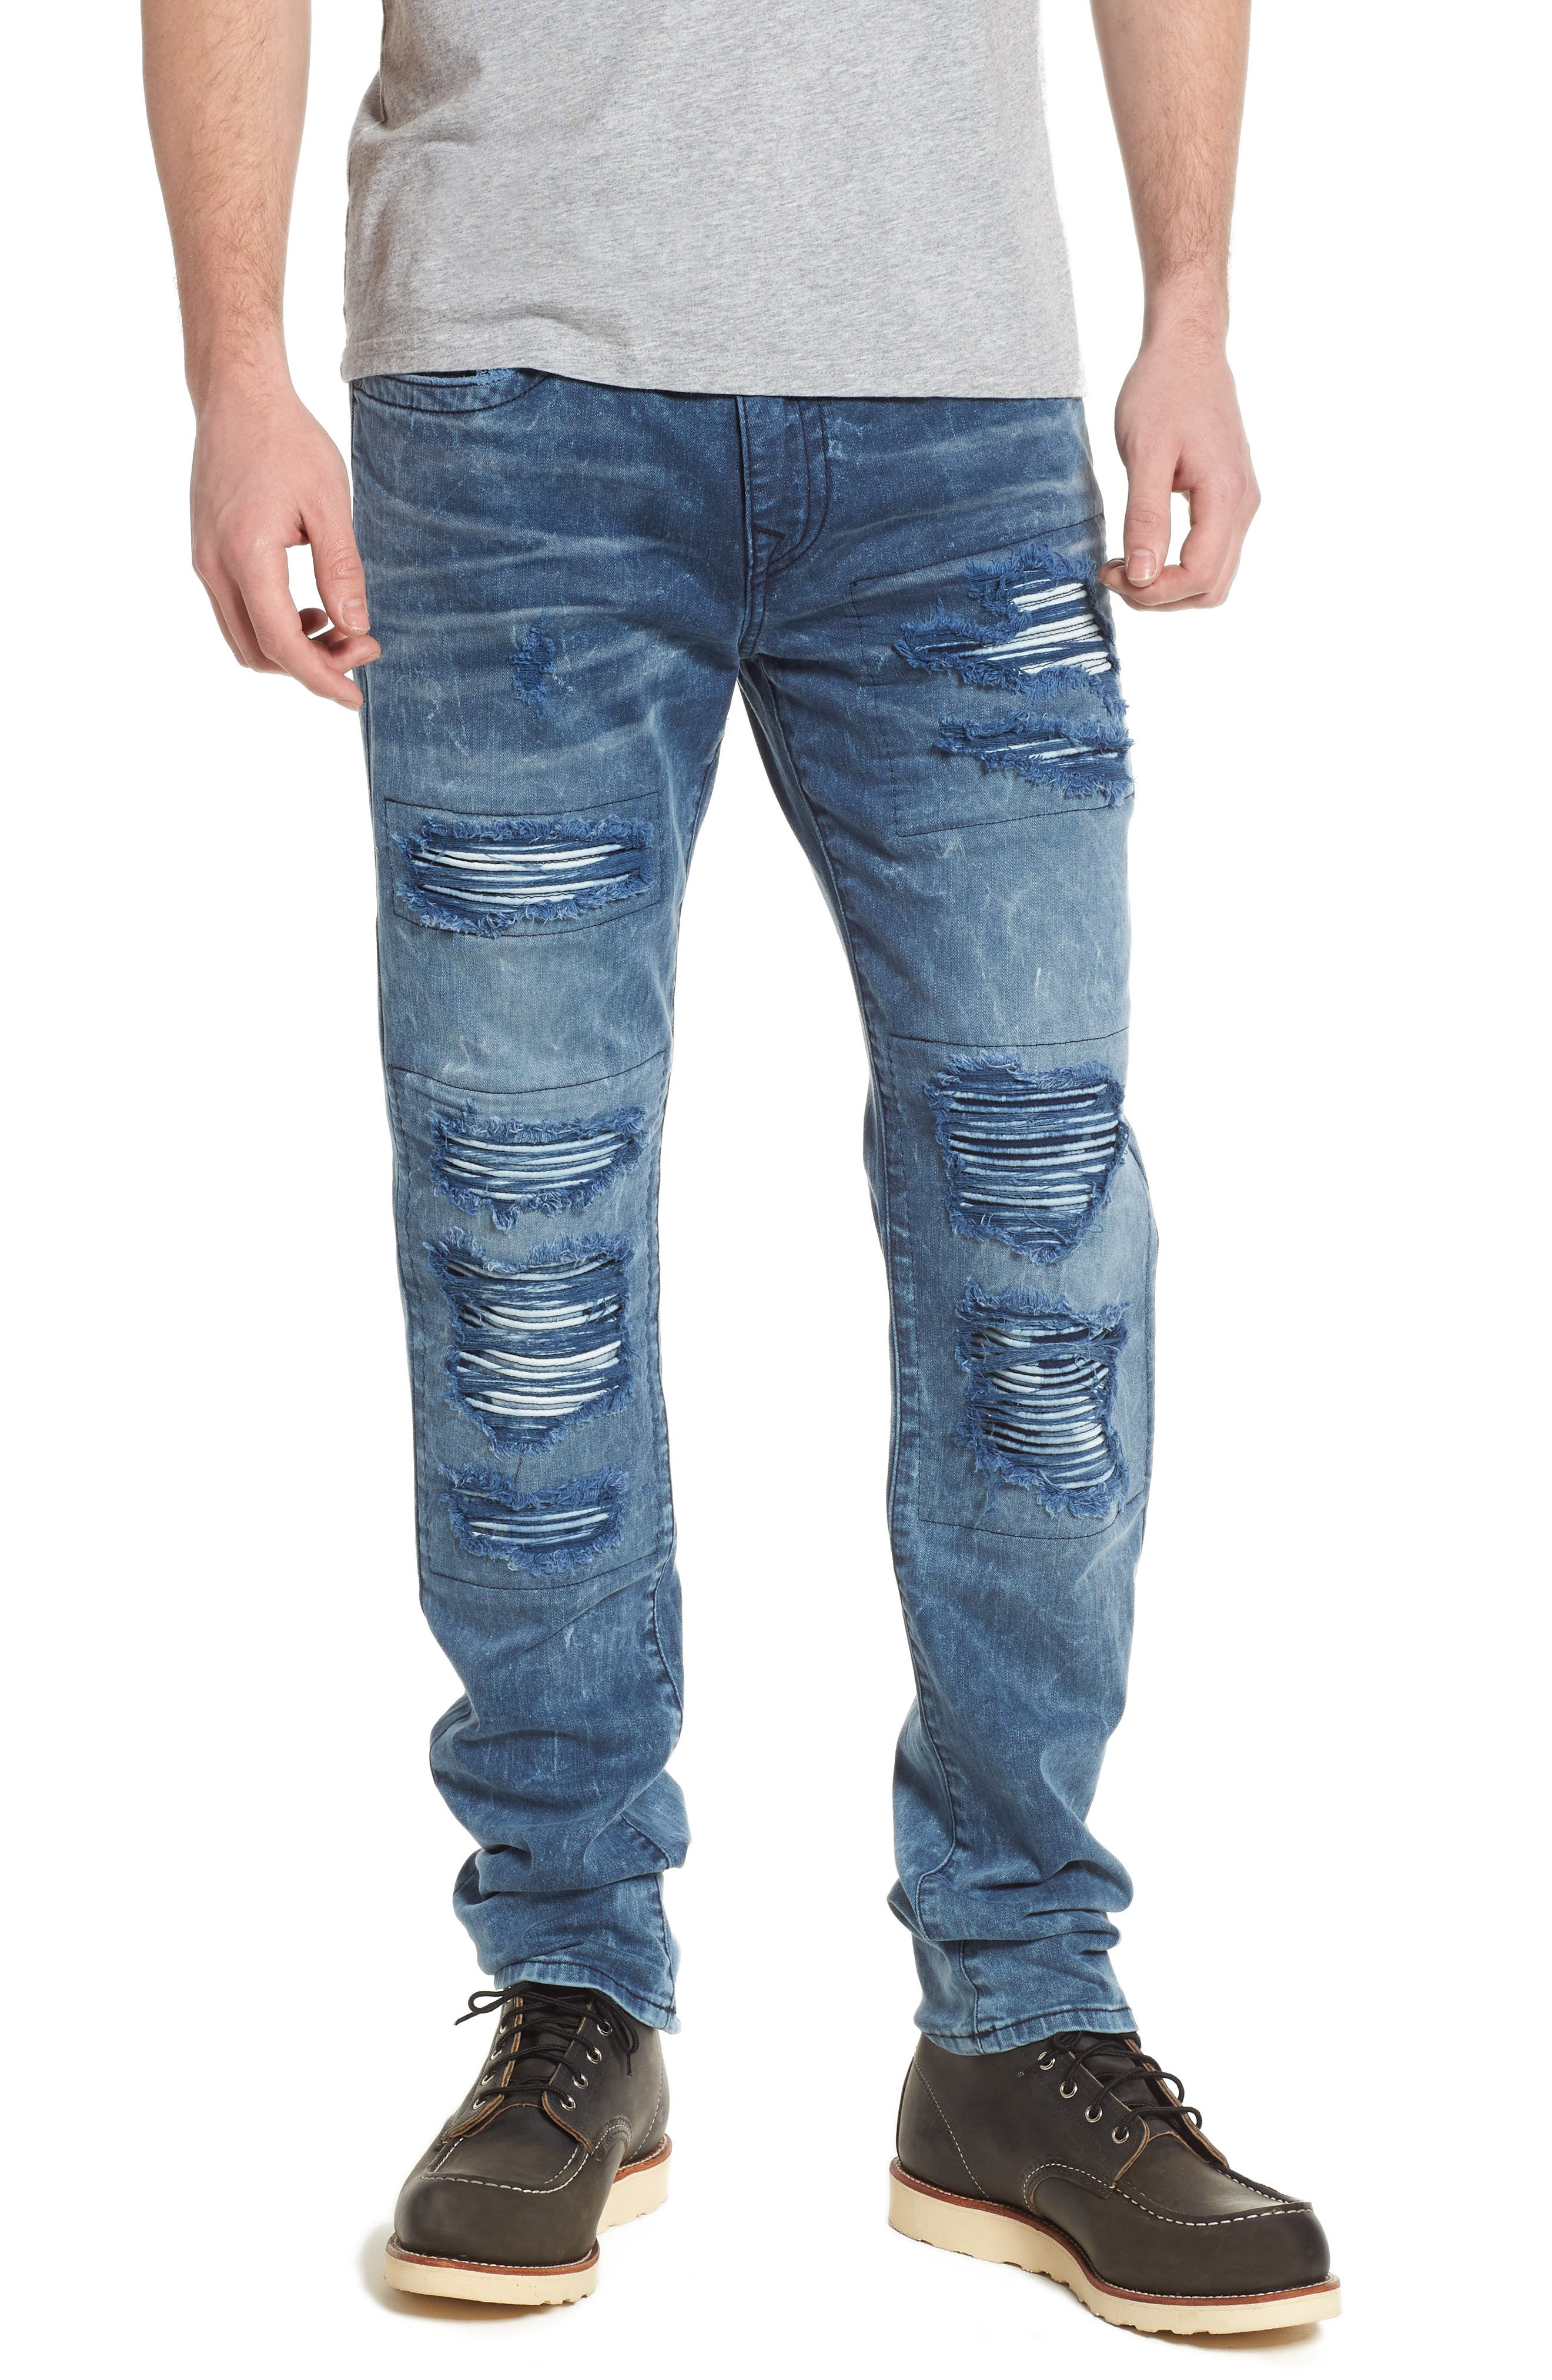 Rocco Skinny Fit Jeans,                             Main thumbnail 1, color,                             Blue